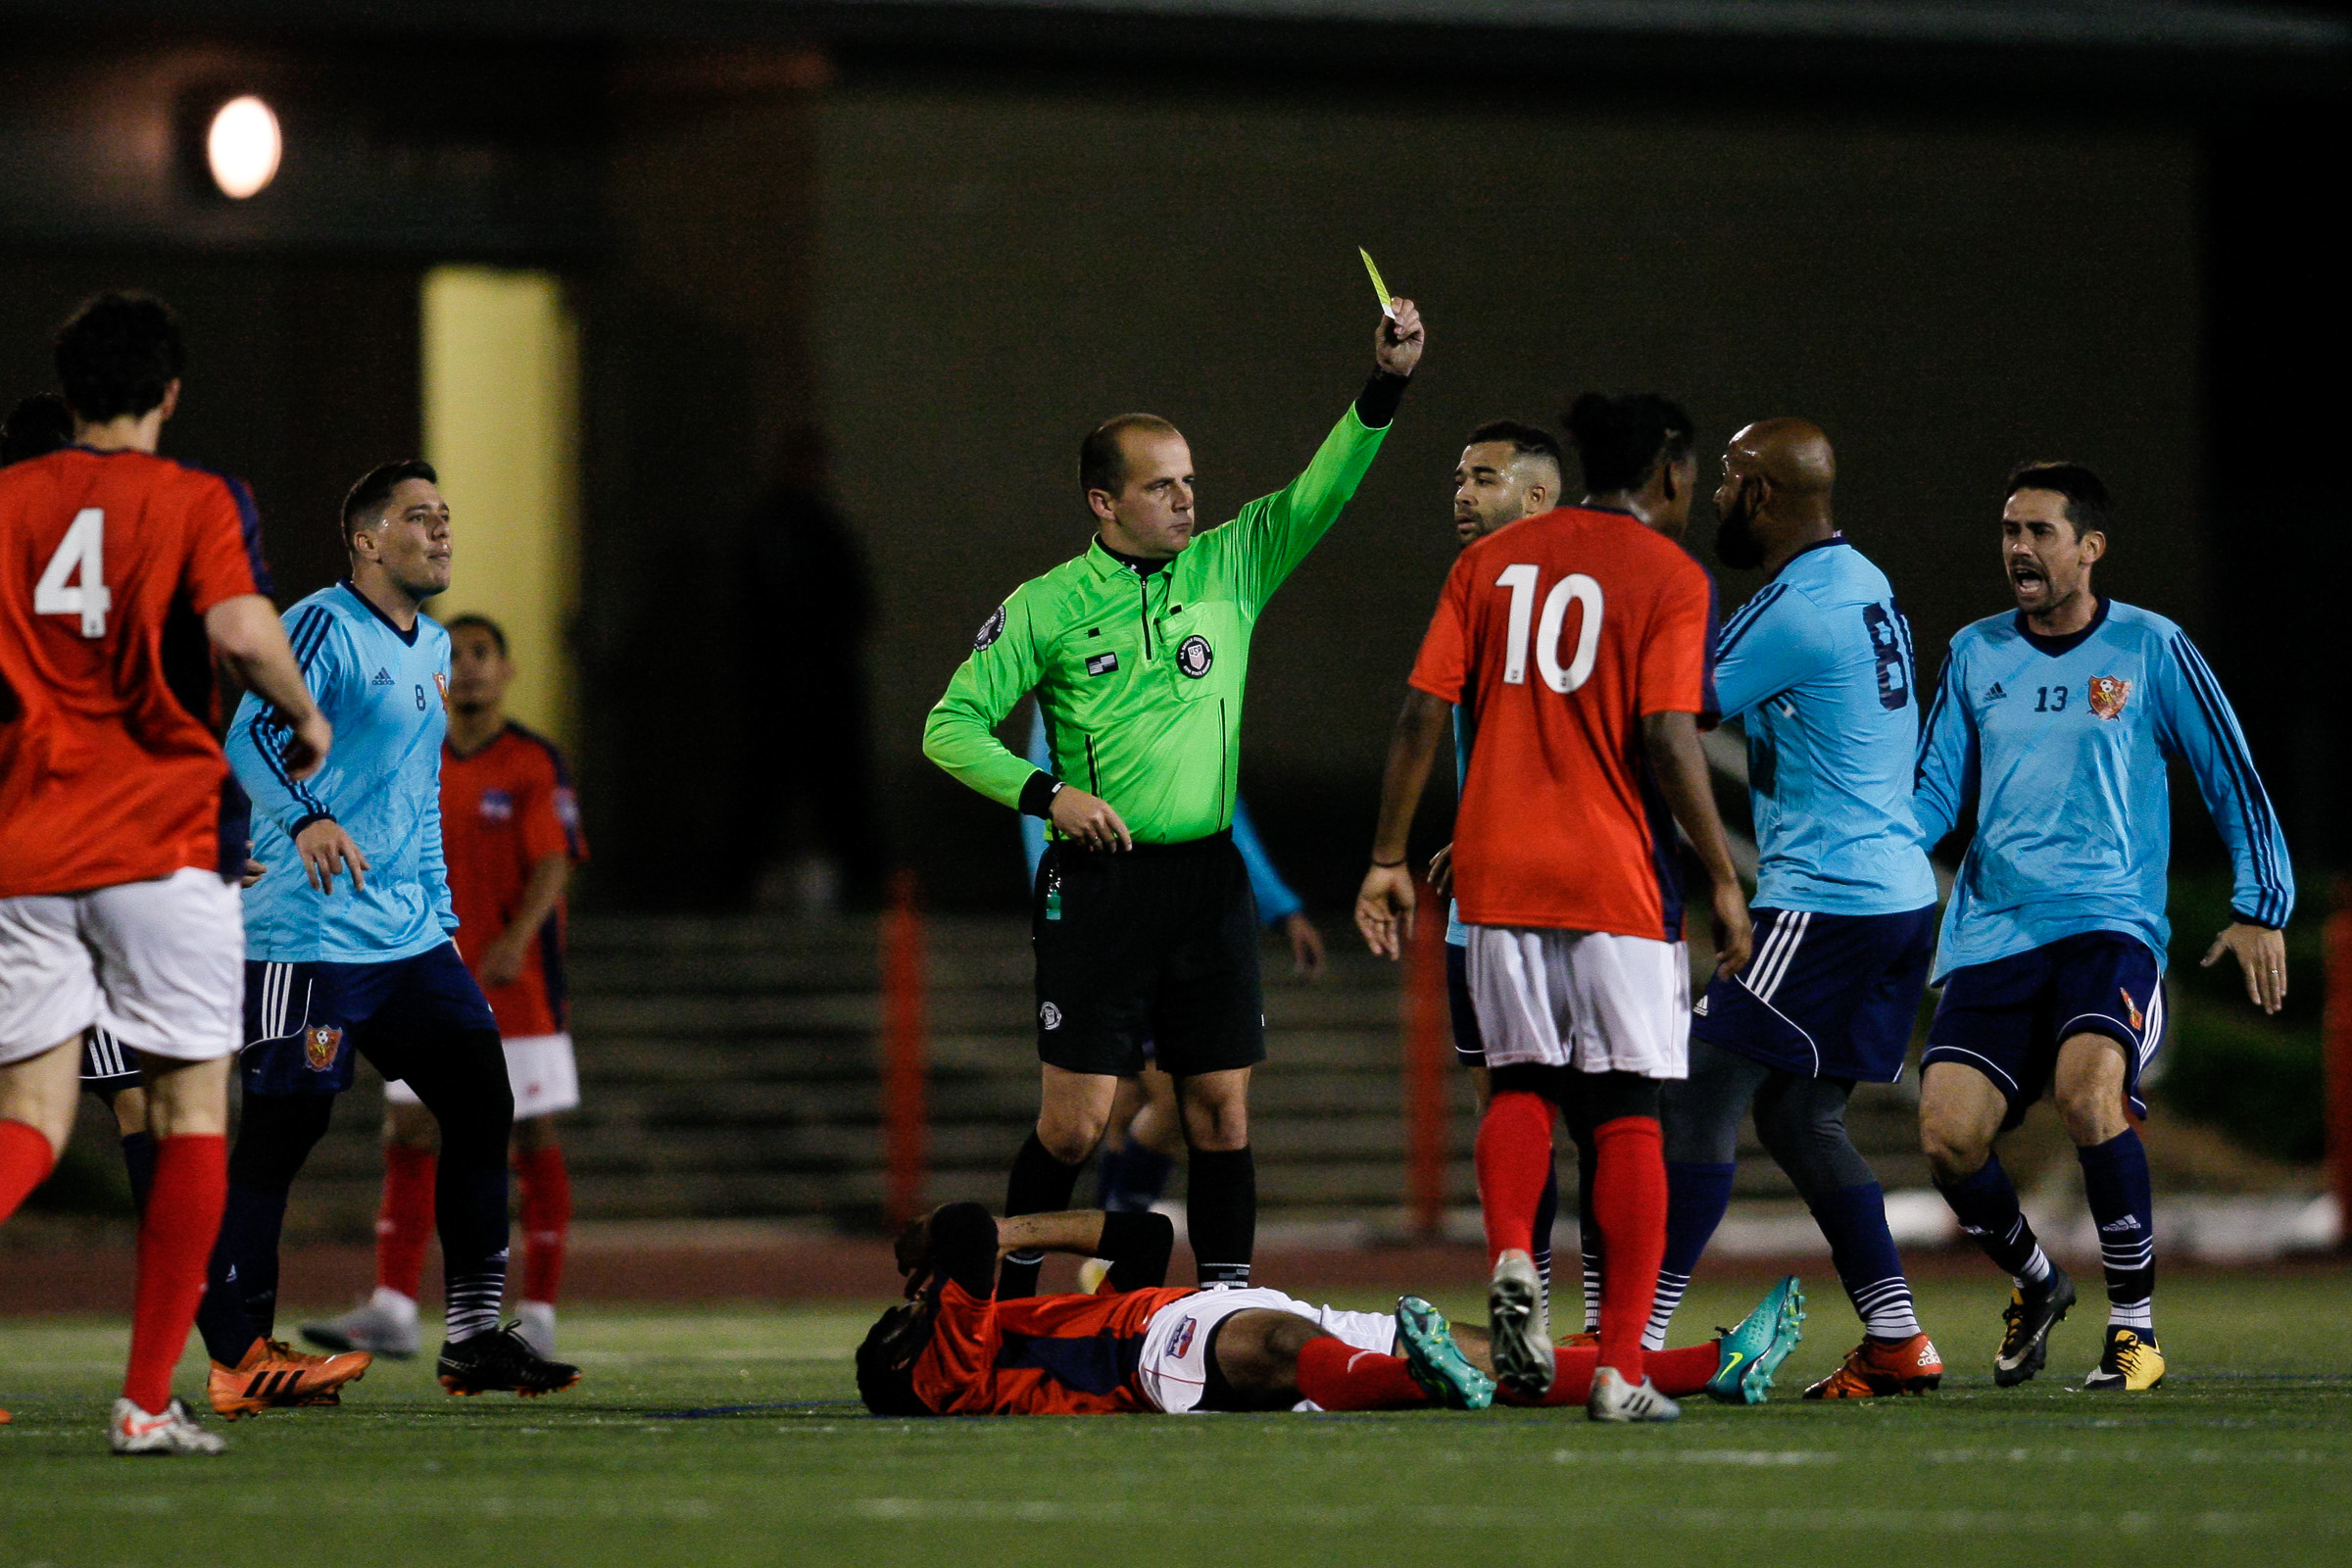 Somerville, MA: A Safira player is shown yellow after a harsh challenge. Safira FC defeated Boston City FC 4-1 in a 2019 Lamar Hunt U.S. Open Cup game on October 20, 2018. (c) Burt Granofsky